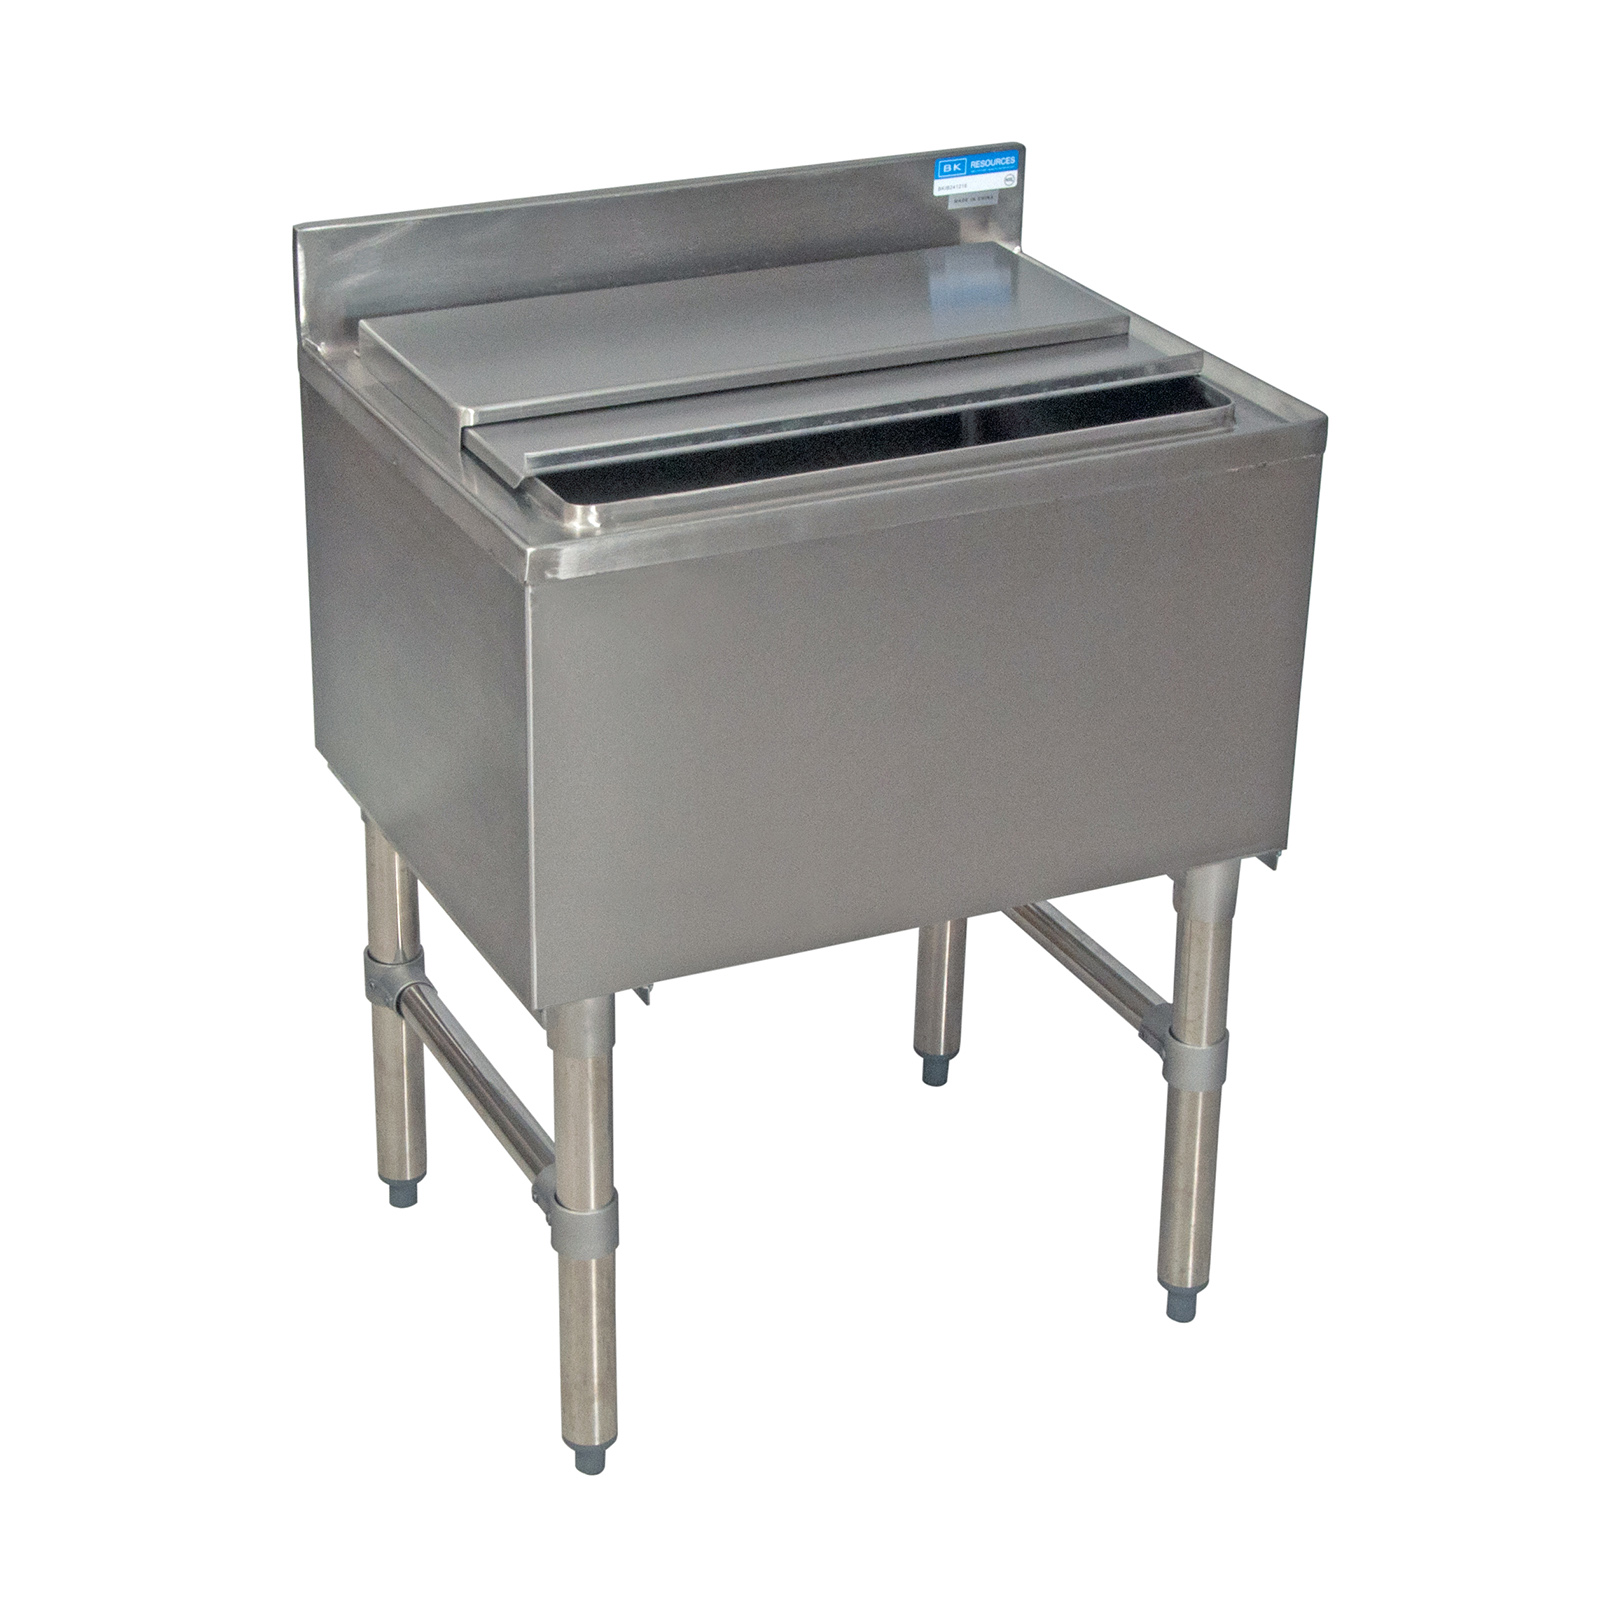 BK Resources BKIB-3612-18S underbar ice bin/cocktail unit